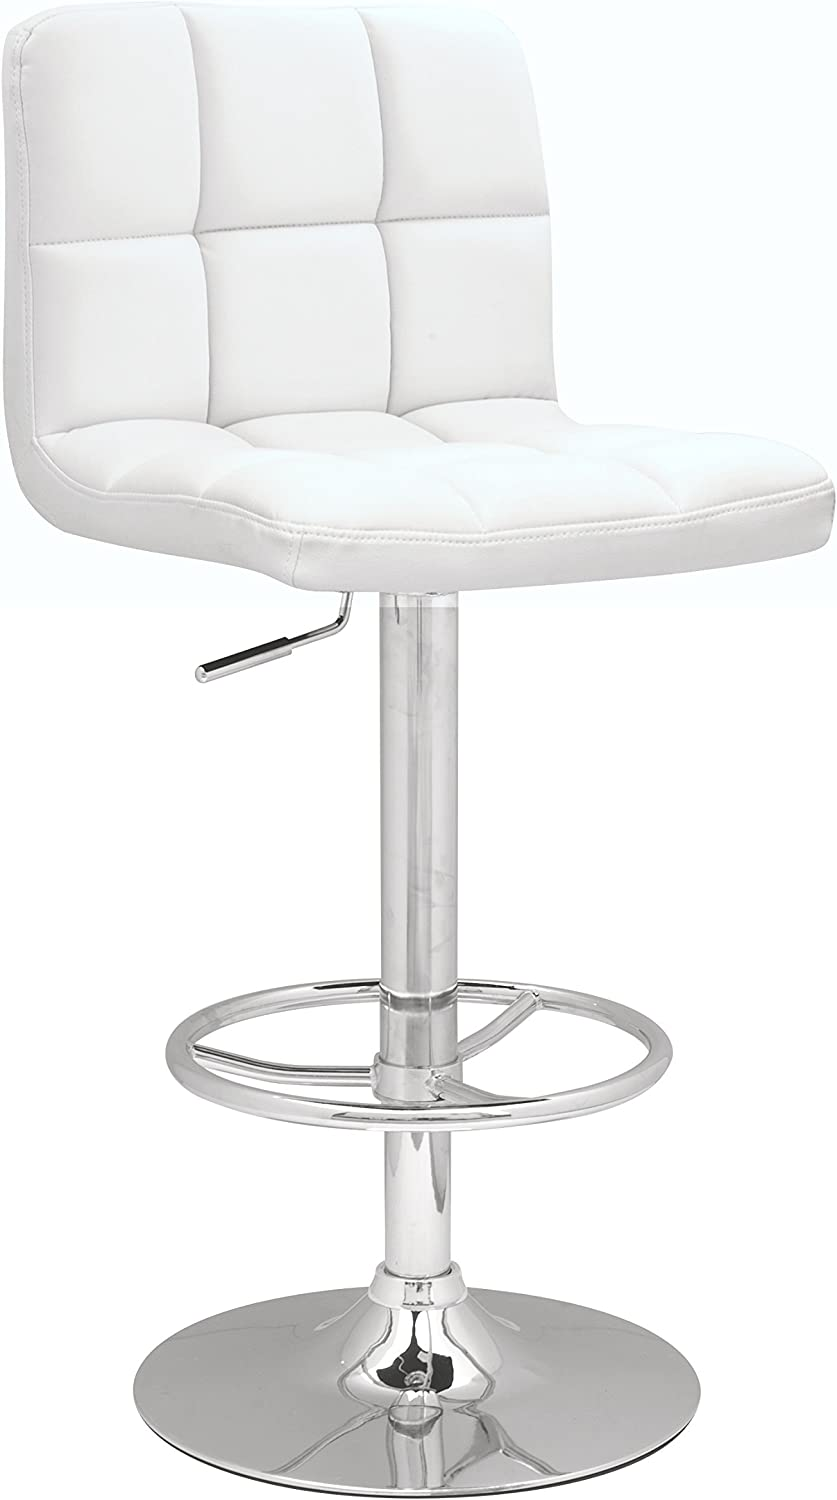 Chintaly Imports Stitched Seat and Back Pneumatic Gas Lift Adjustable Height Swivel Stool, Chrome White PU